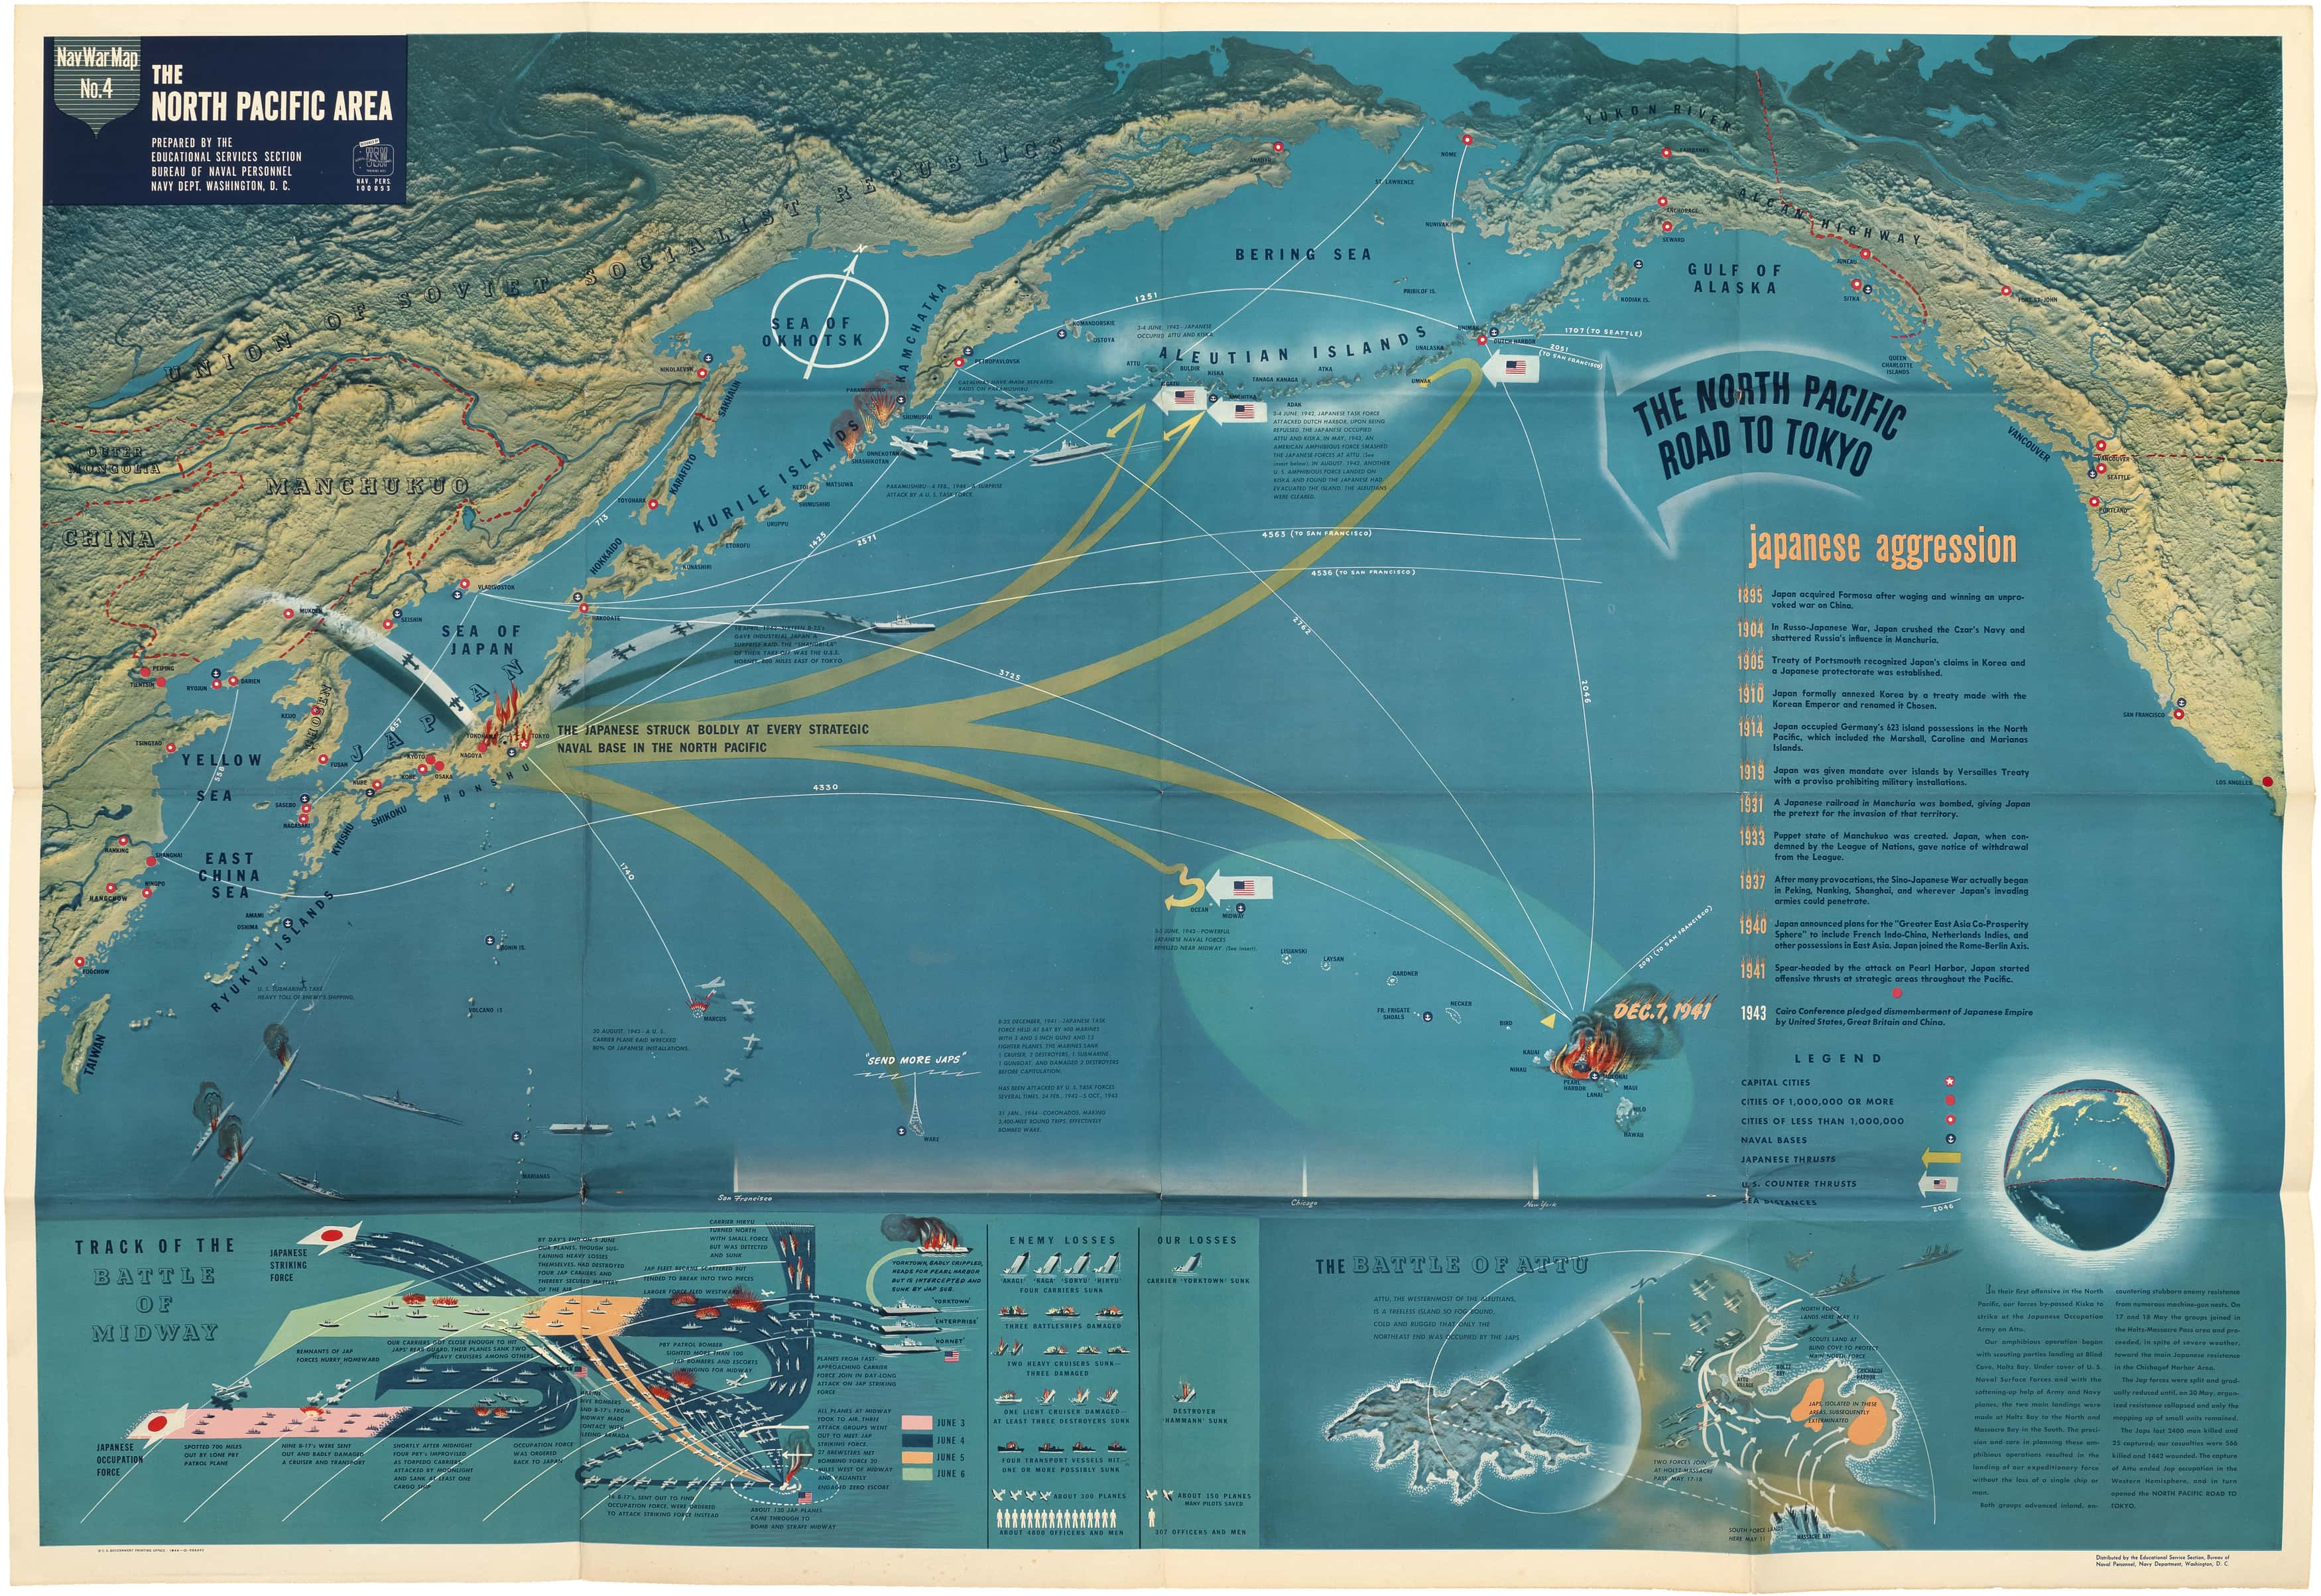 Striking U.S. Navy map of the North Pacific in WWII